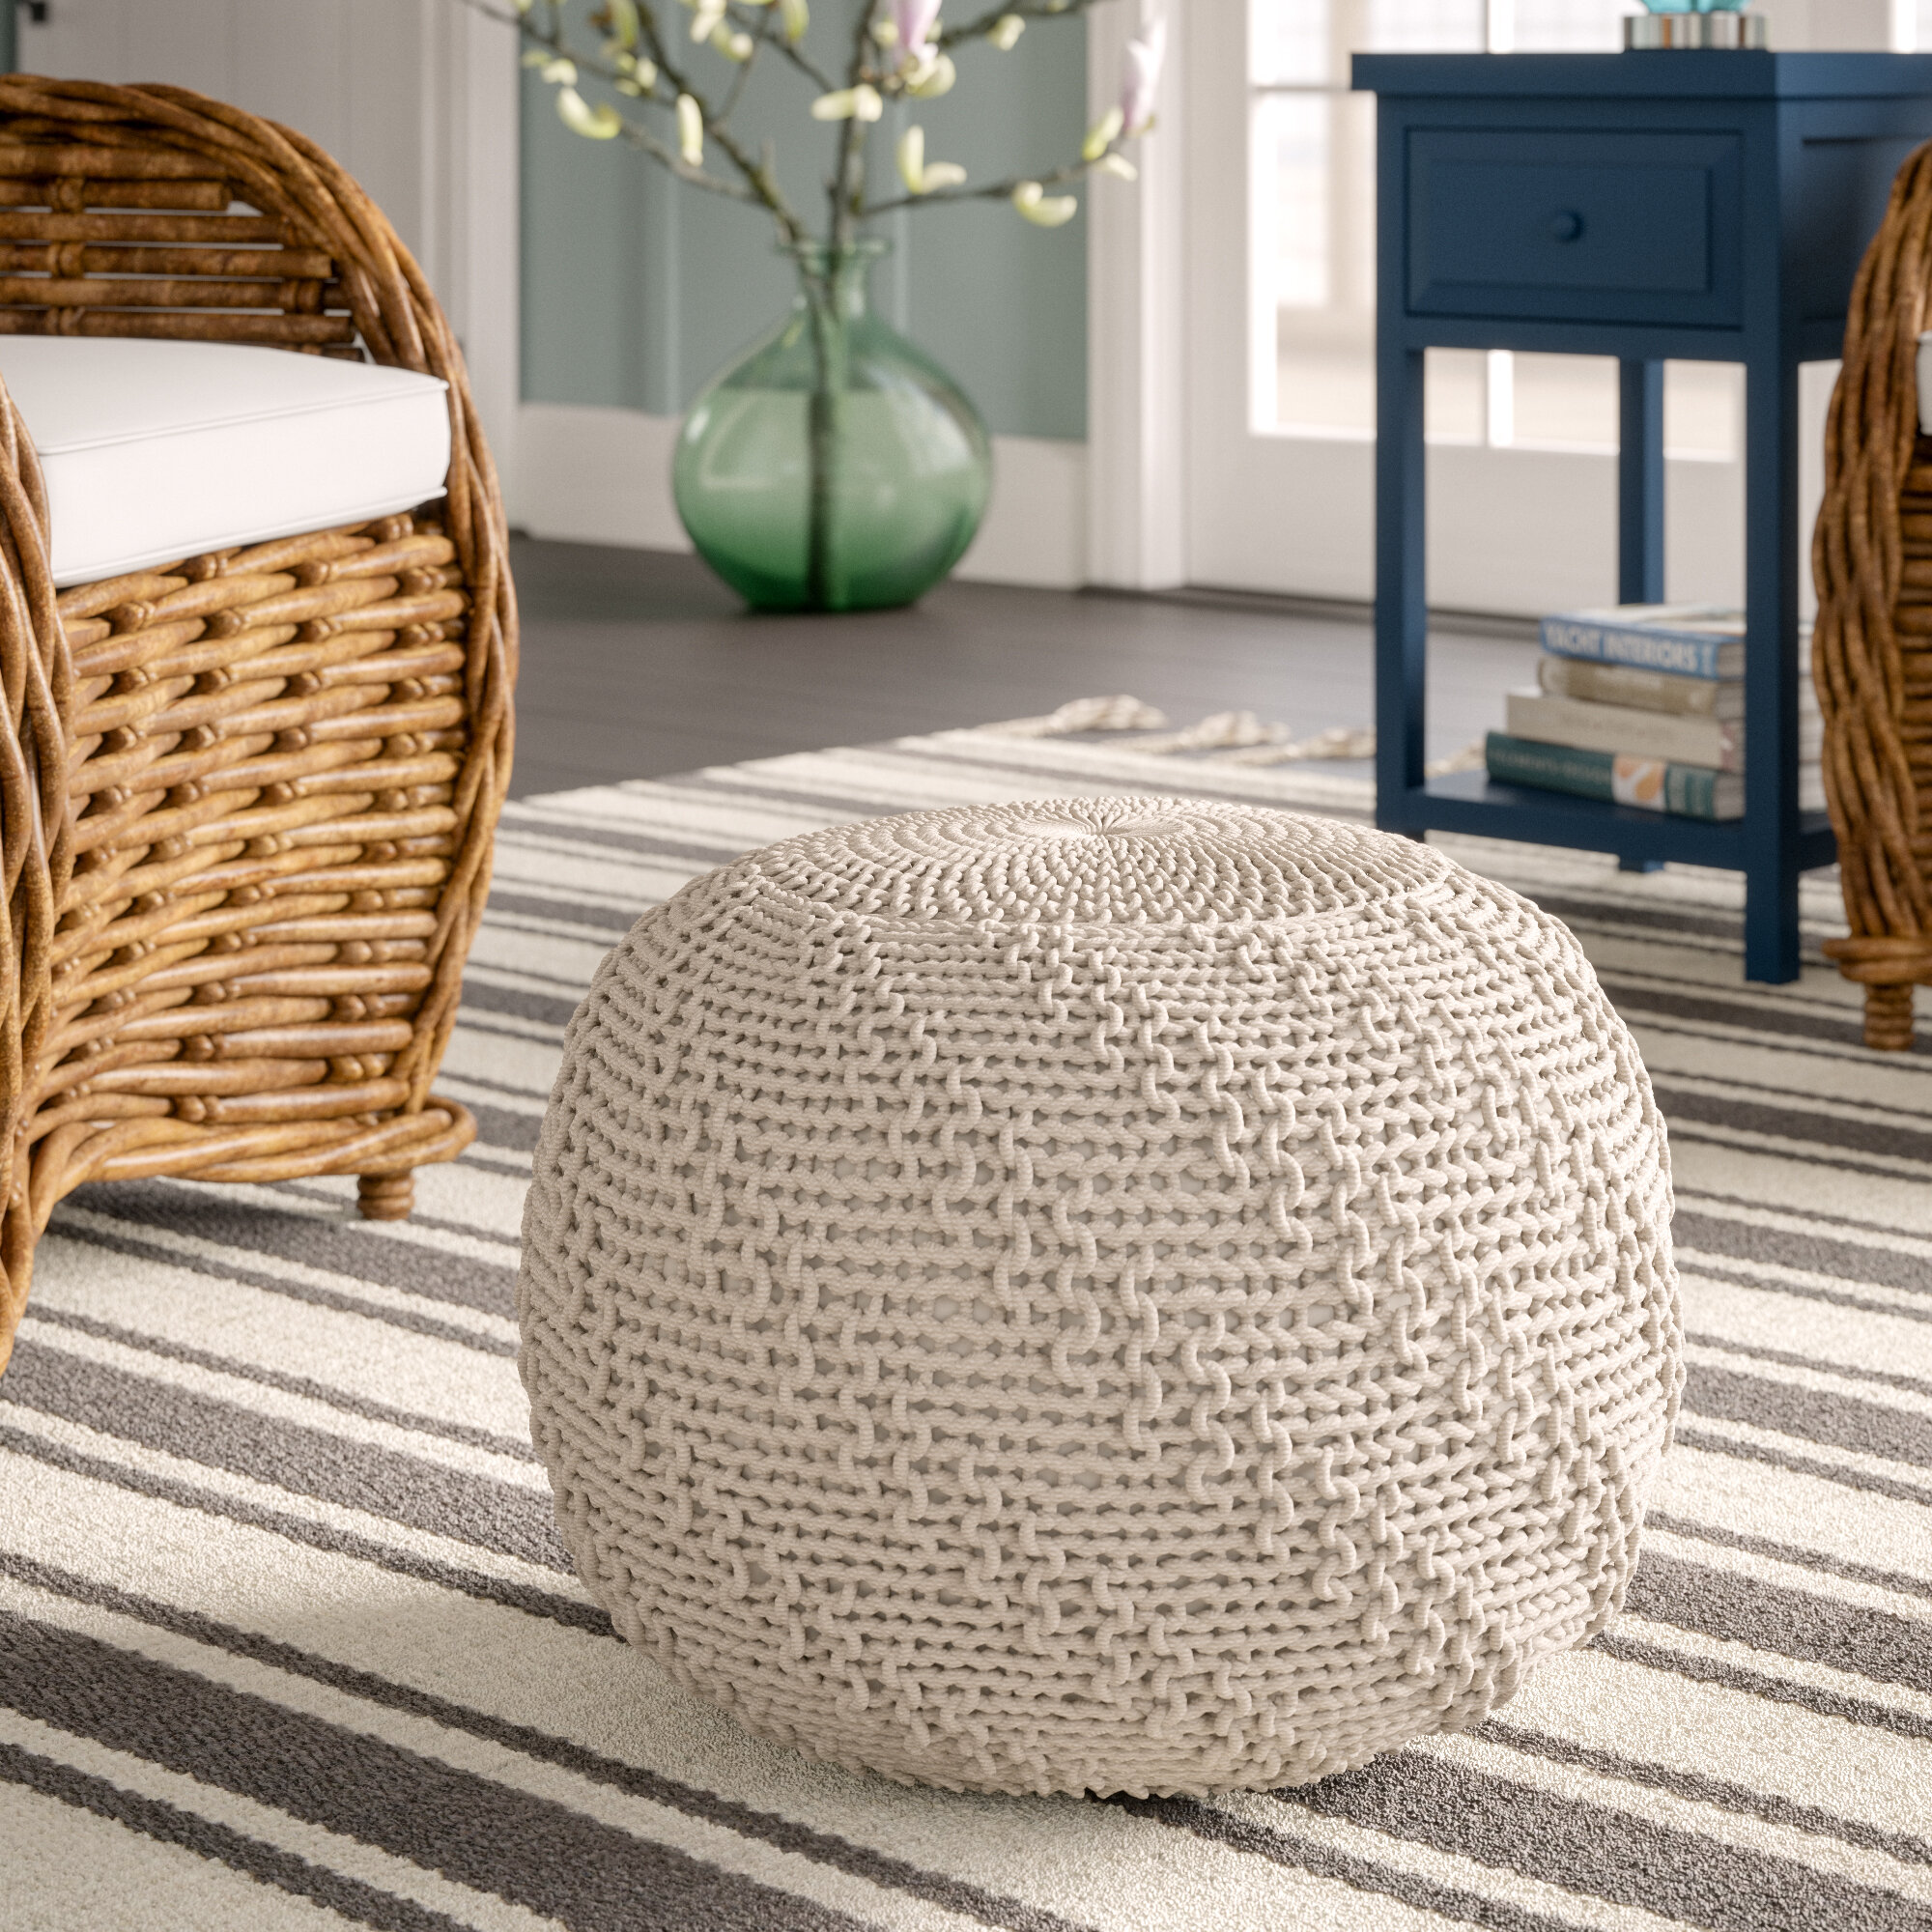 Breakwater Bay Knitted Pouf Reviews